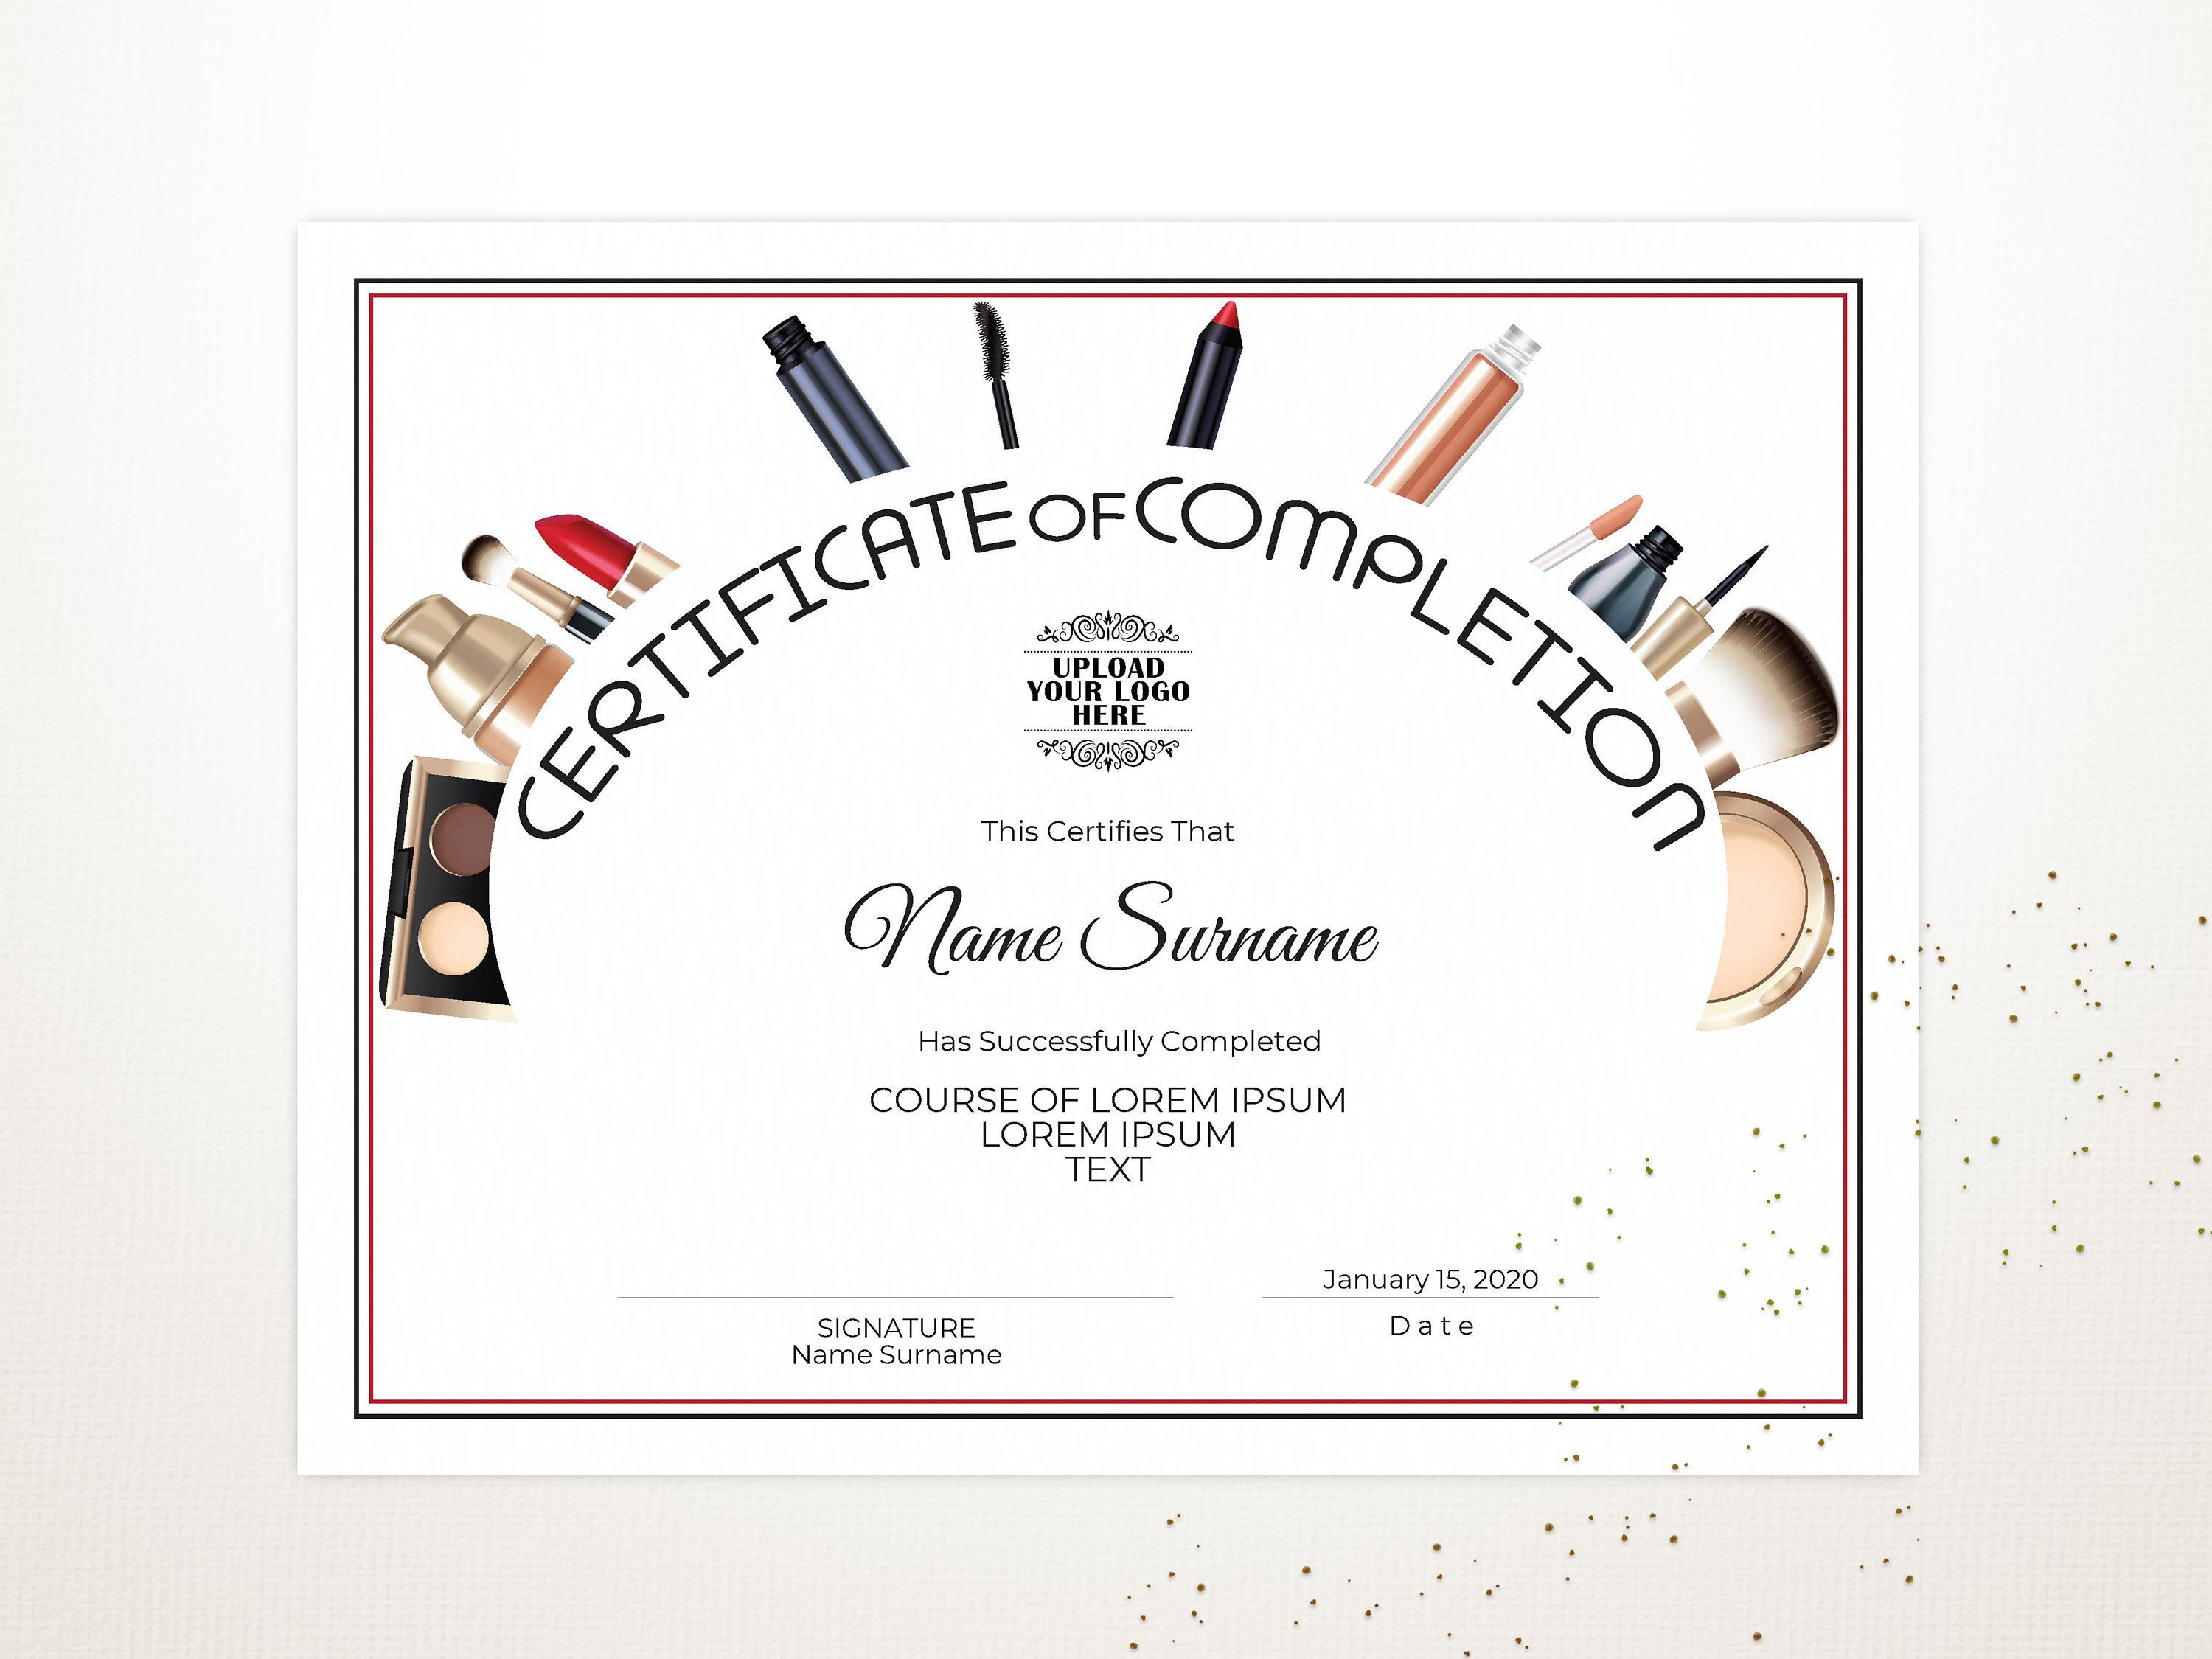 Editable Certificate Of Completion Template Modern Etsy Editable Certificates Certificate Of Completion Template Certificate Of Completion